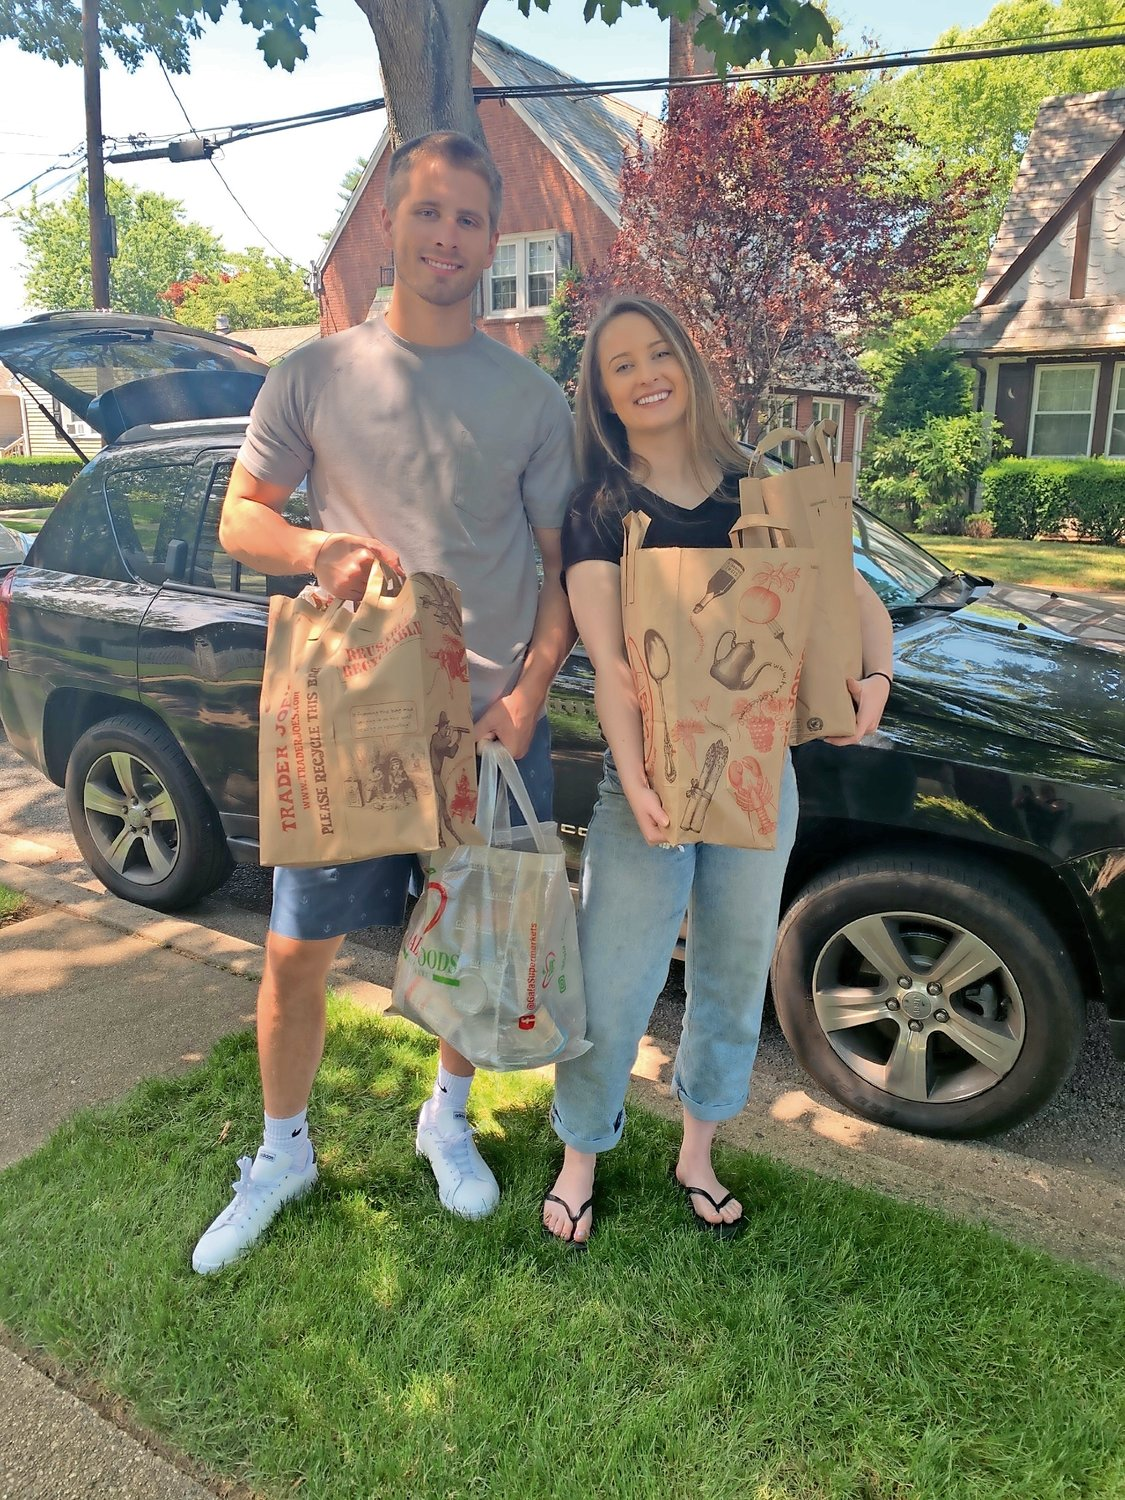 Michael Miskiewicz helped his sister, Molly, unpack donations from her car on June 26.